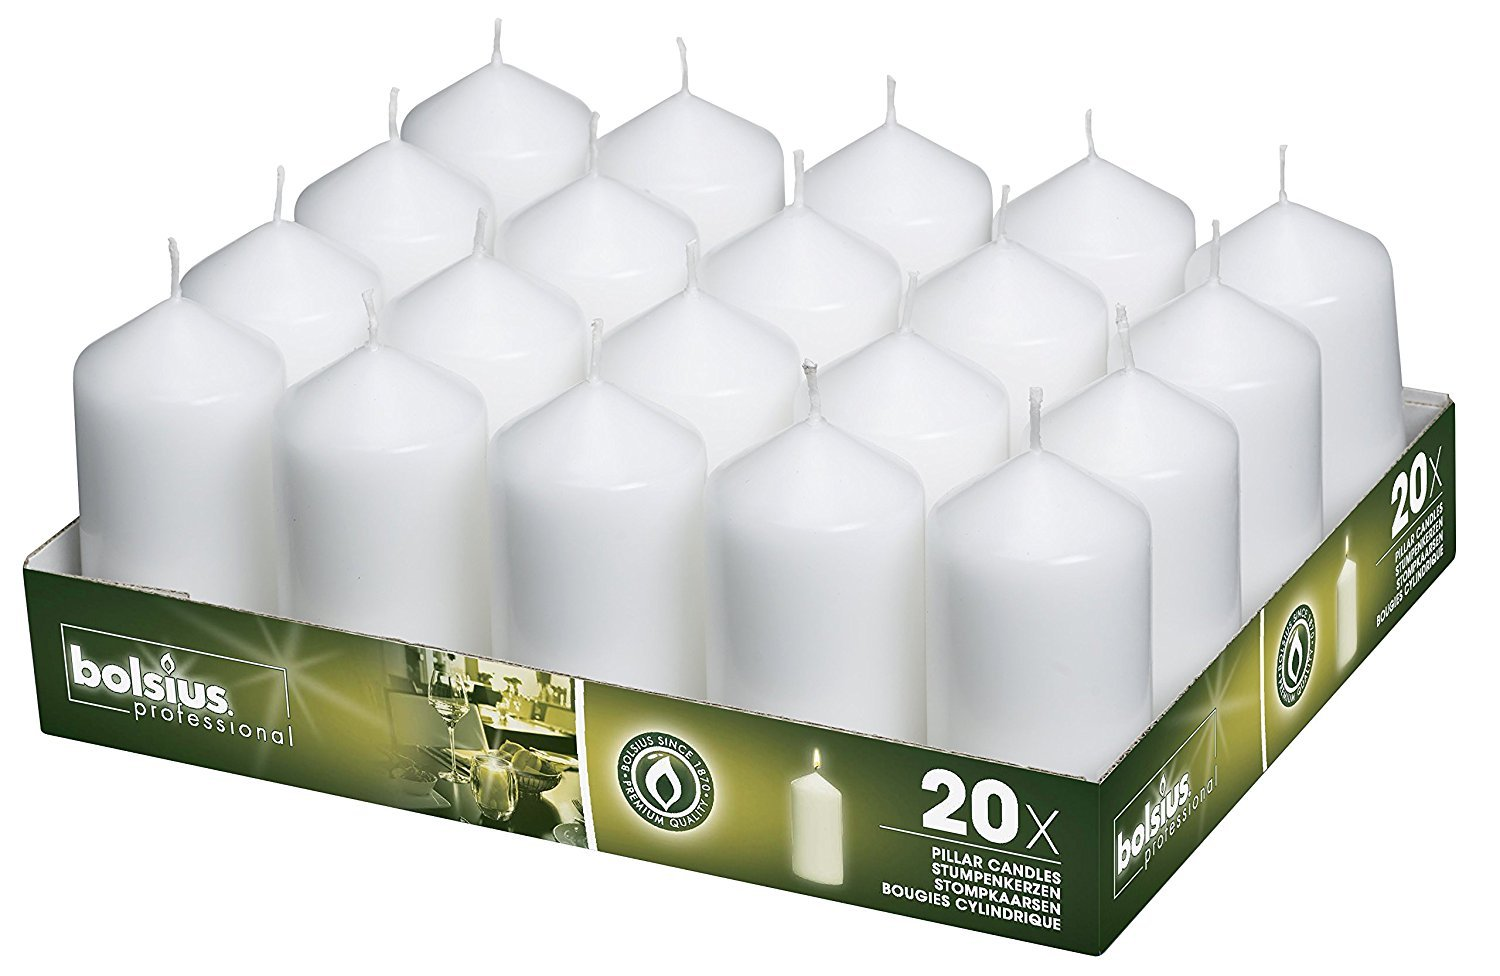 Bolsius Tray Of 20 White Pillar Candles Aprox. 2X4 Inches 4335409243